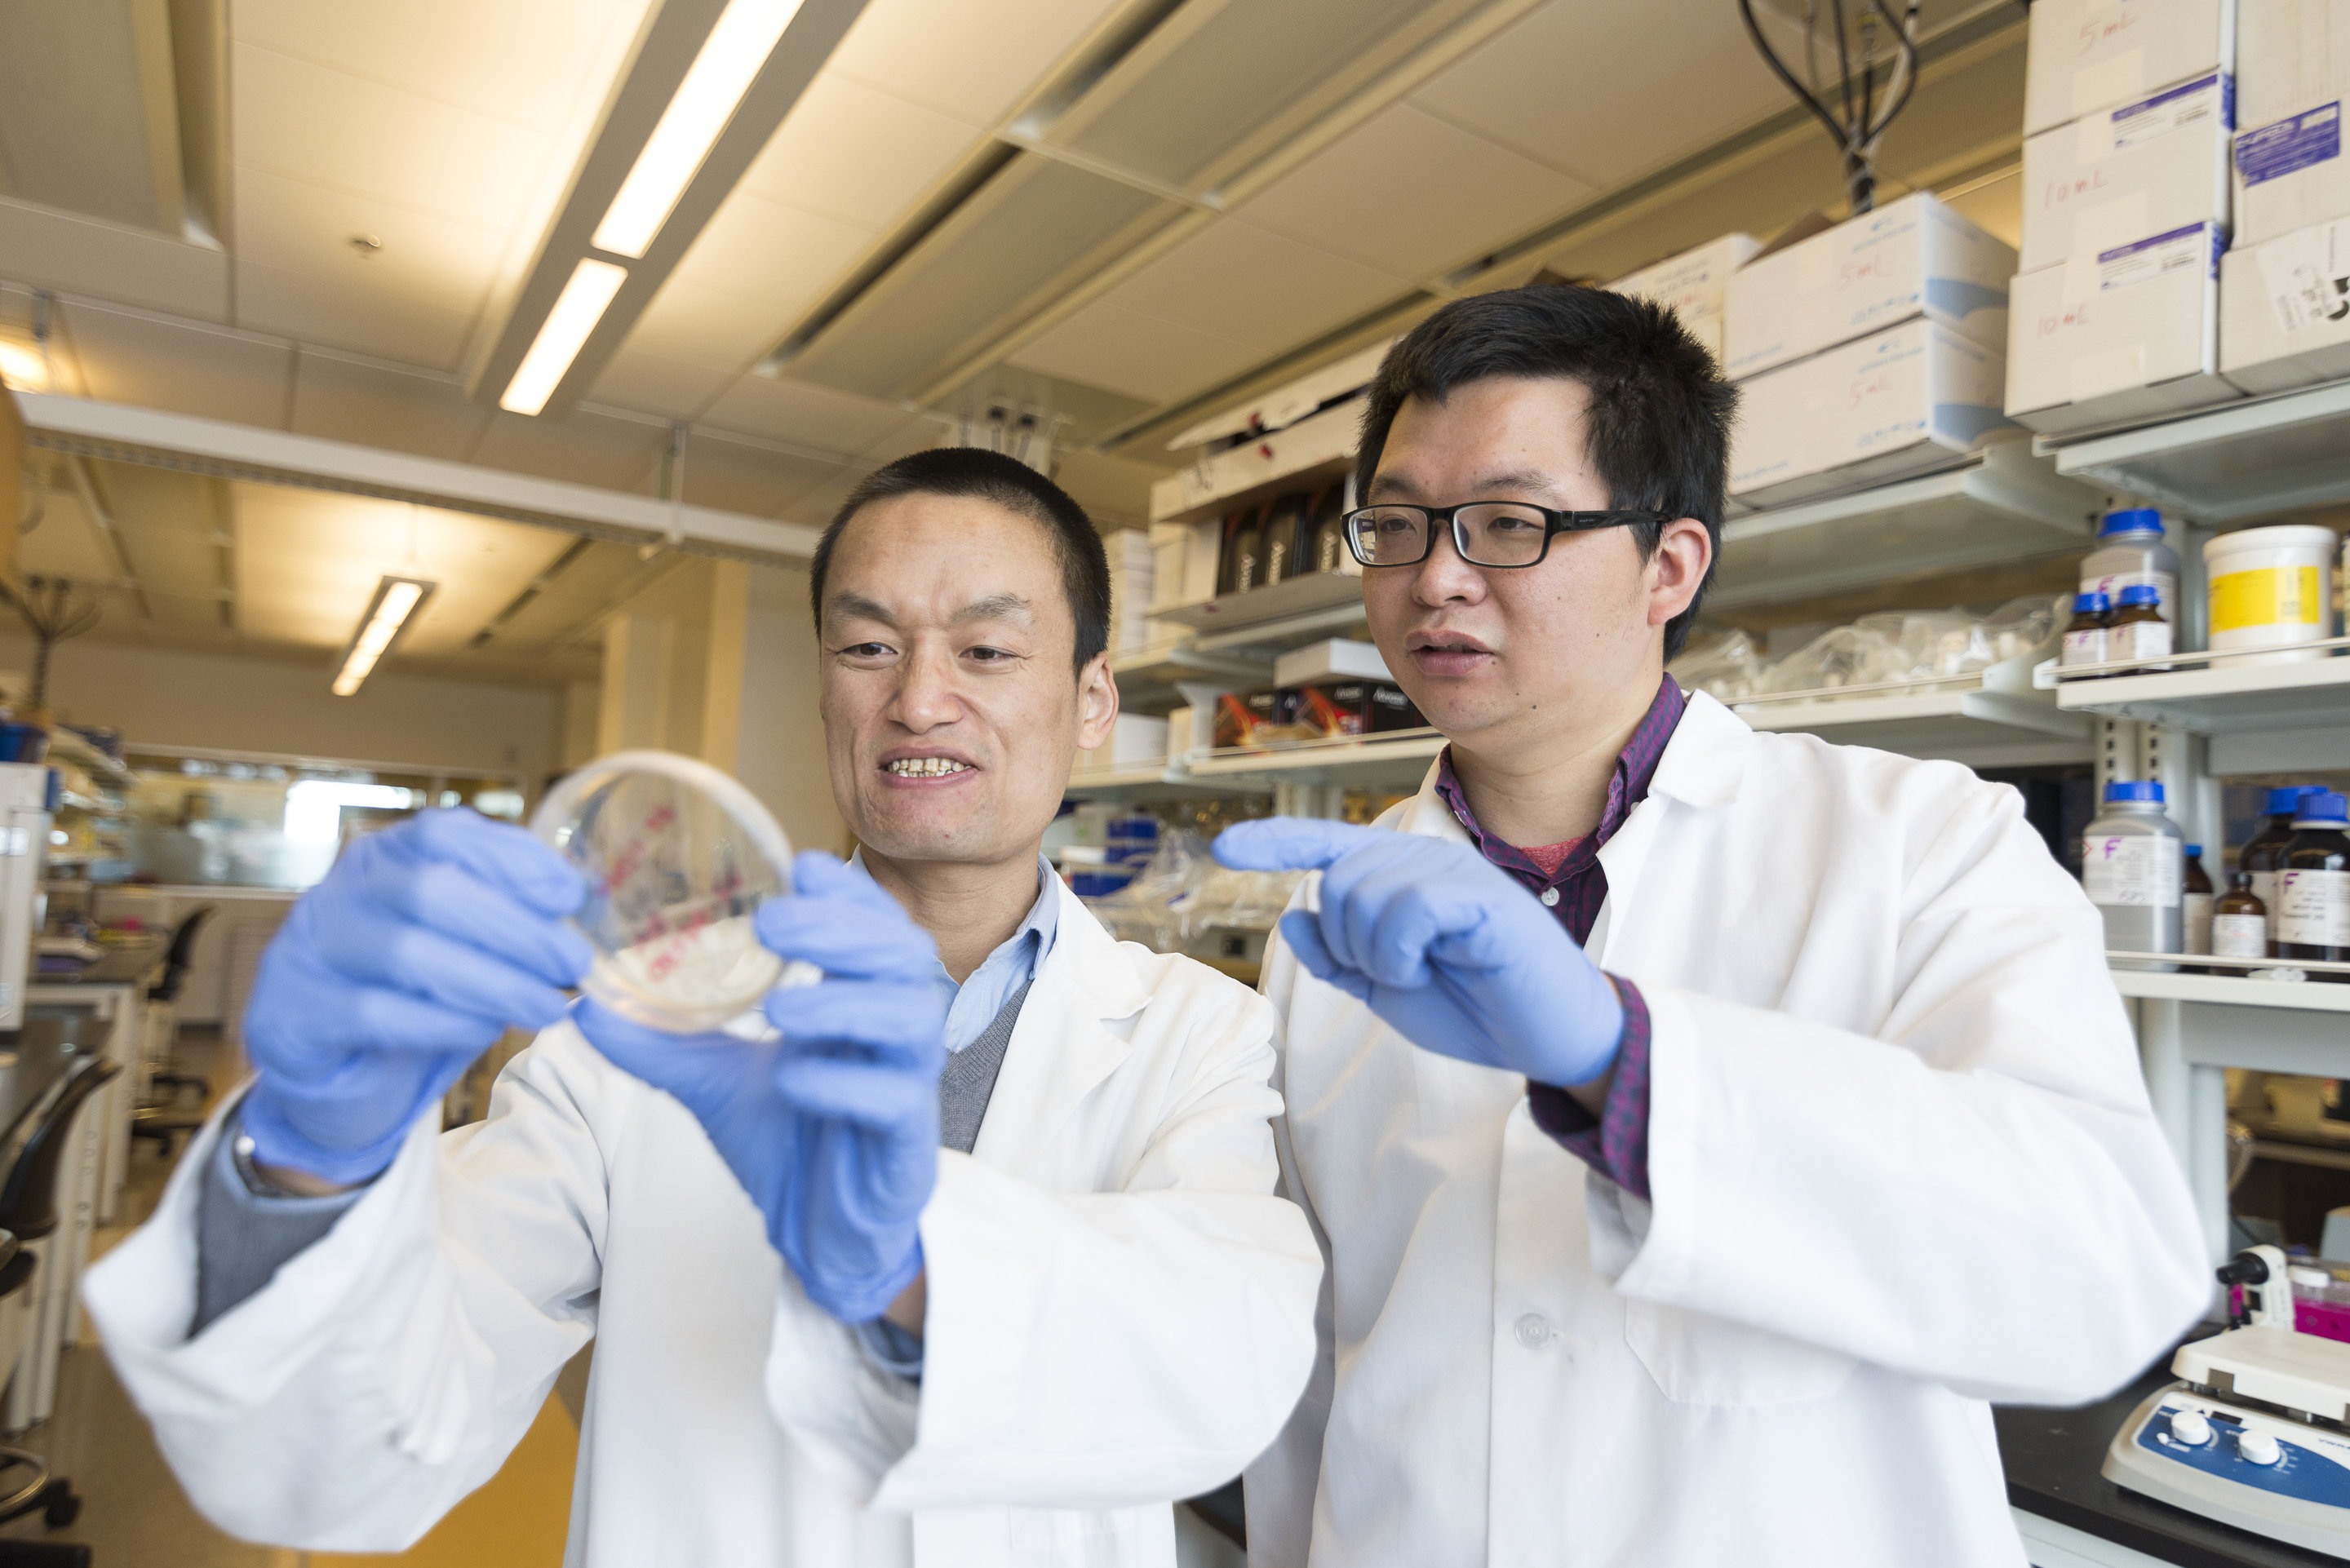 Study findings show promise in preventing heart disease in cancer survivors